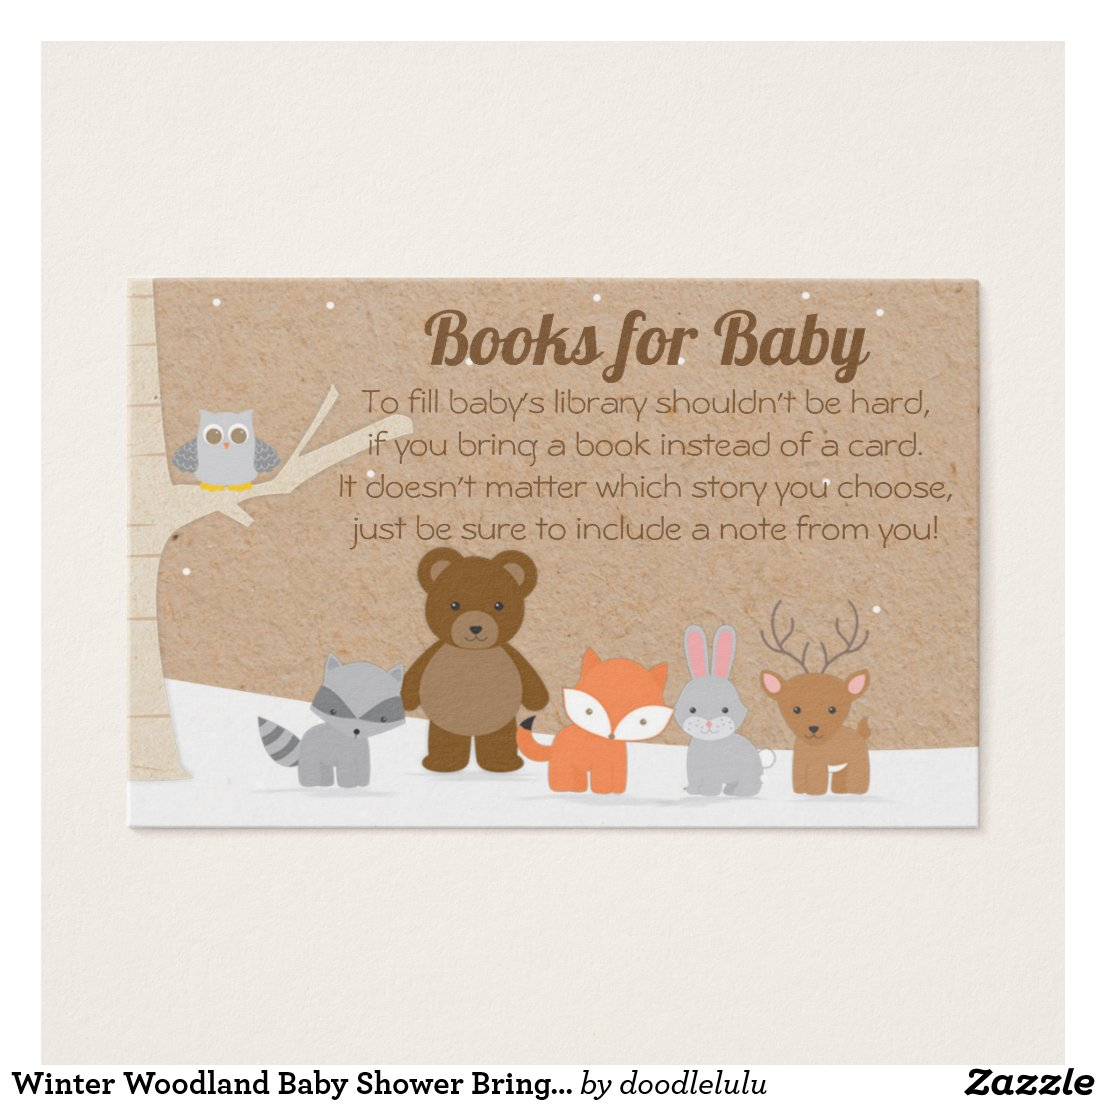 Winter Woodland Baby Shower Bring a Book Card